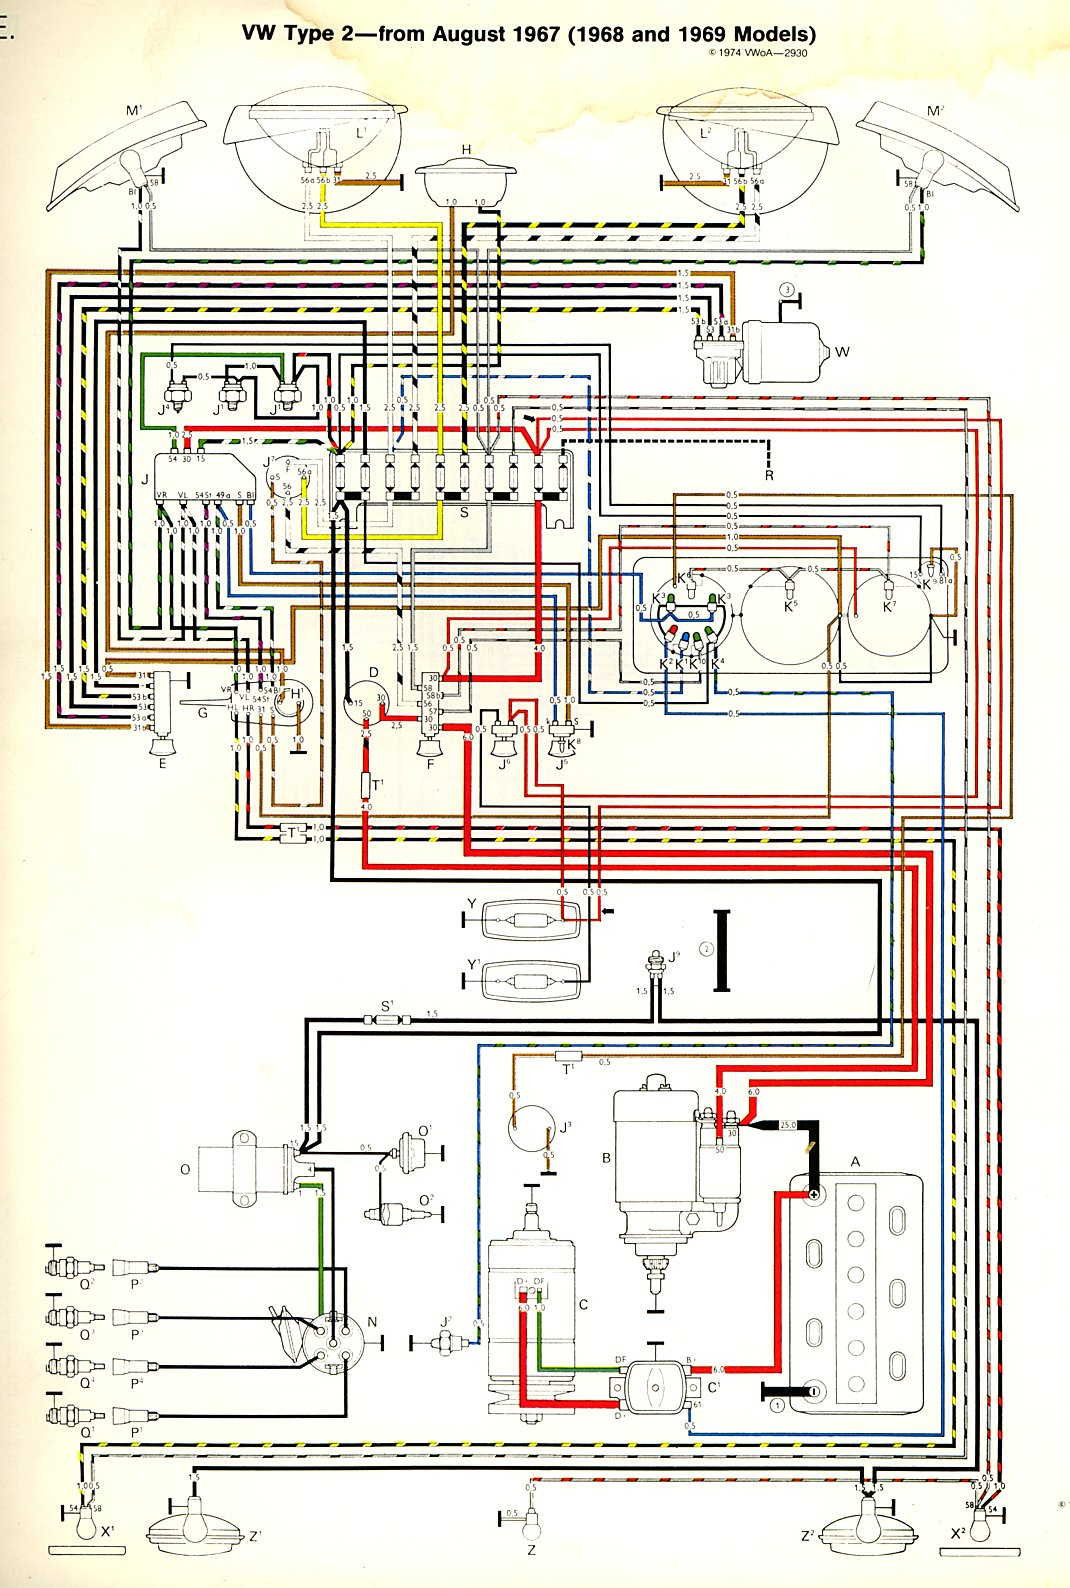 baybus_6869a 1968 69 bus wiring diagram thegoldenbug com 1973 vw beetle wiring diagram at virtualis.co